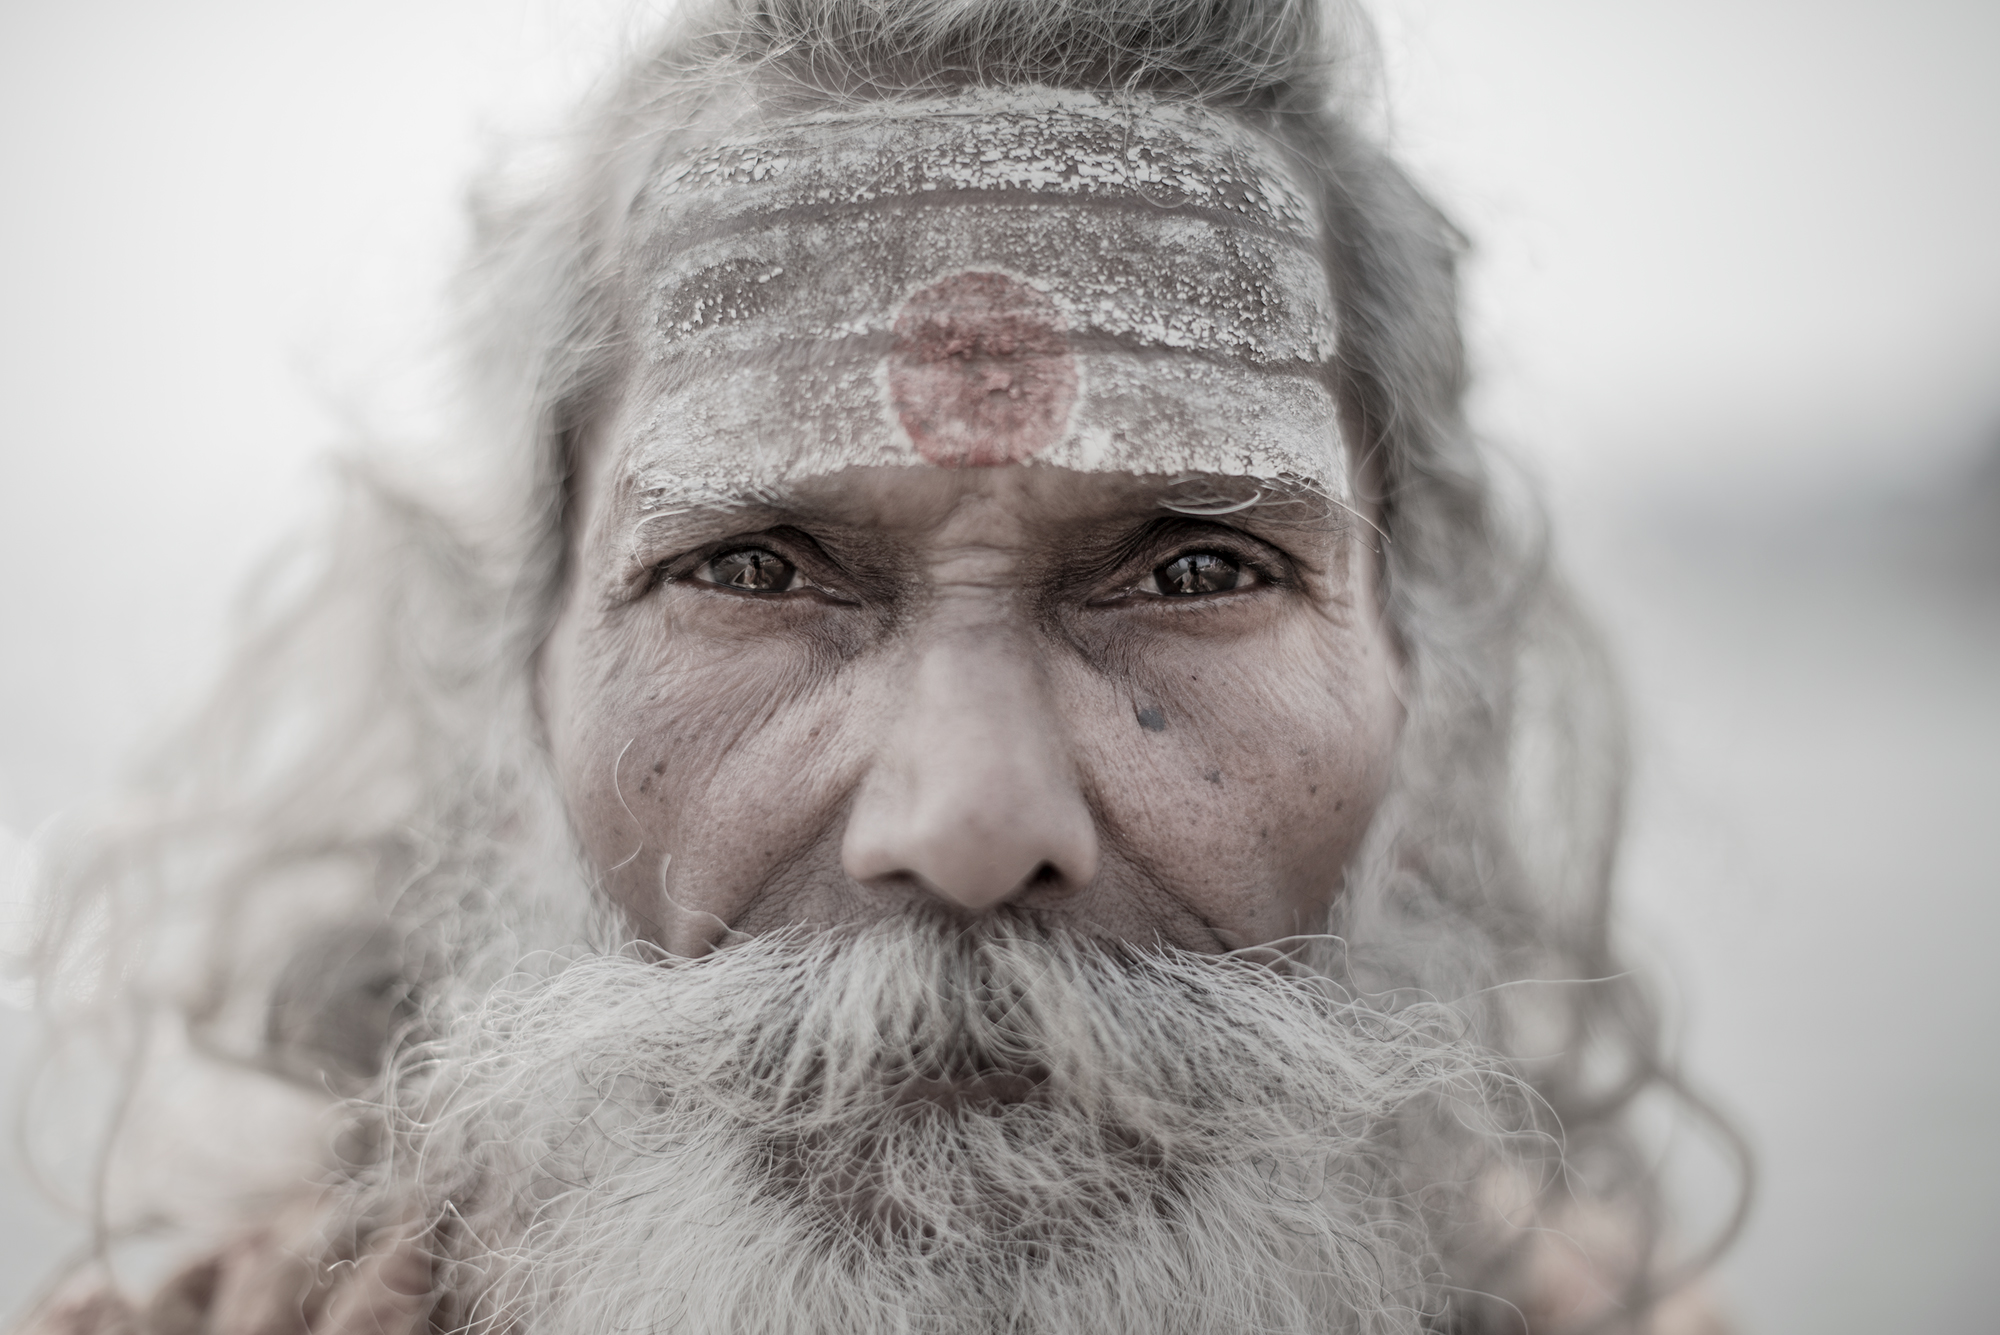 Old-Indian-man-face-with-beard.jpg